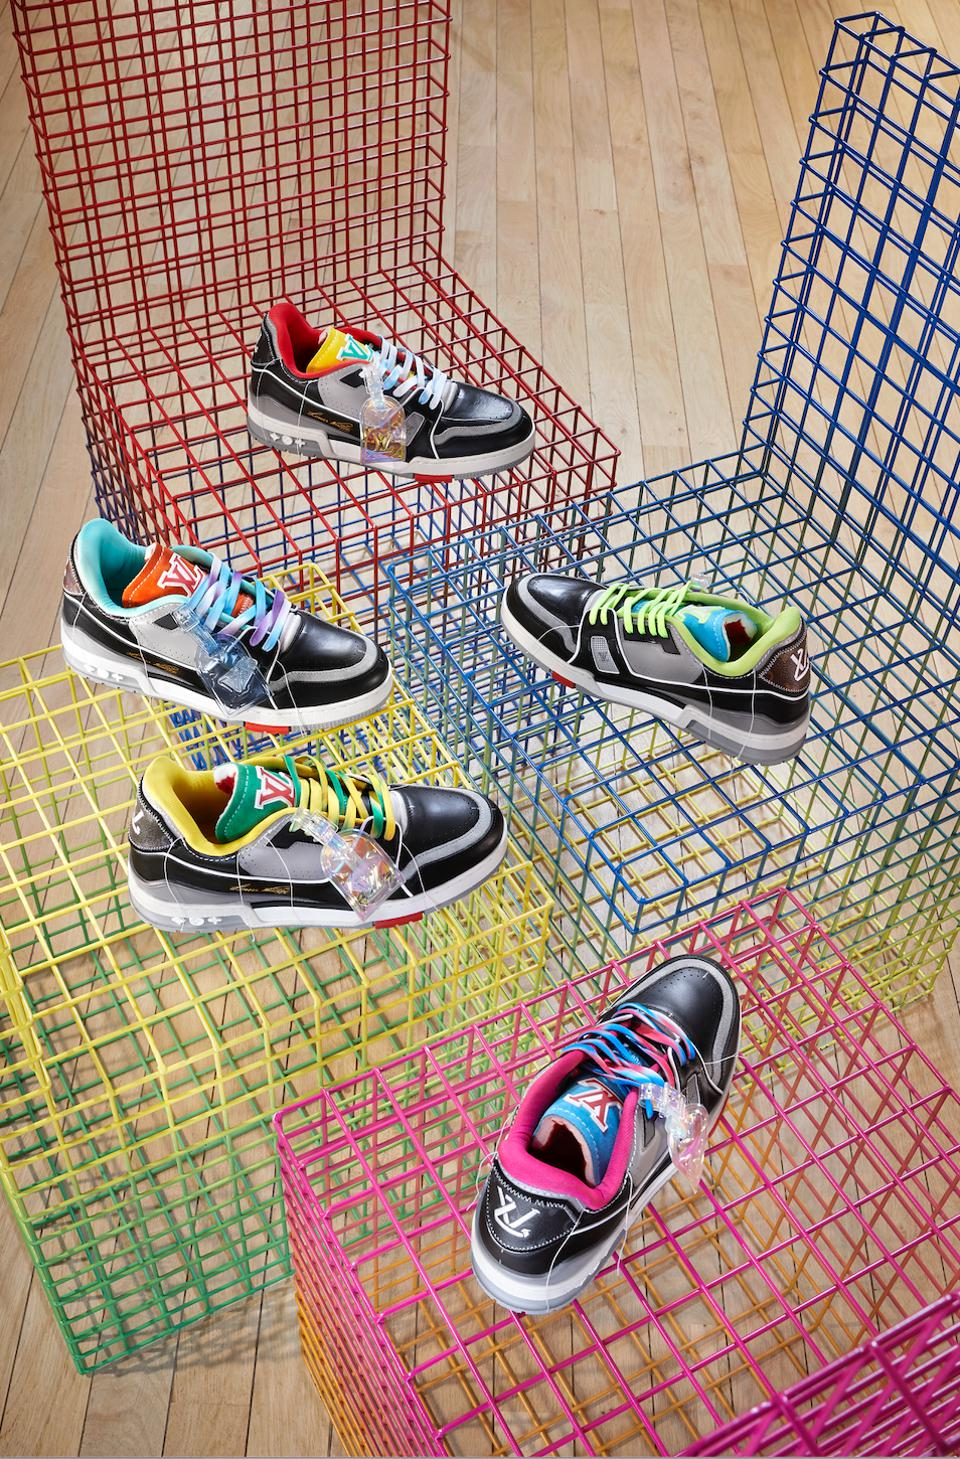 Five pairs of mule-colored Louis Vuitton men's trainers on colored wire crates